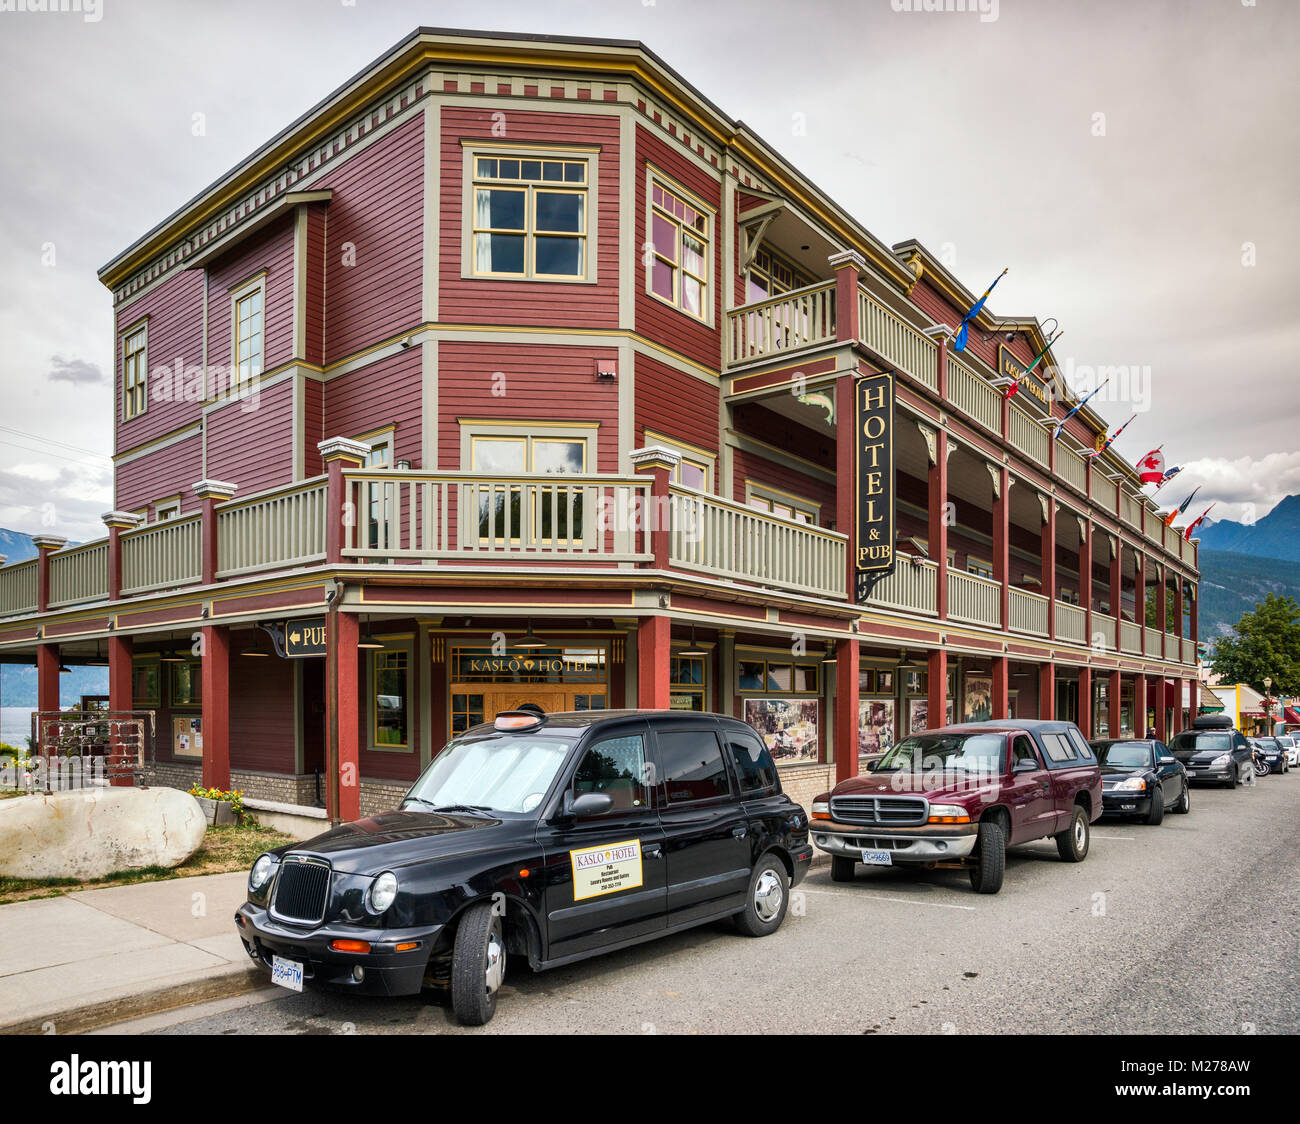 London Taxi Company LTI TX1 Cab, hackney carriage, in front of Kaslo Hotel on Front Street in Kaslo, Kootenay Region, - Stock Image